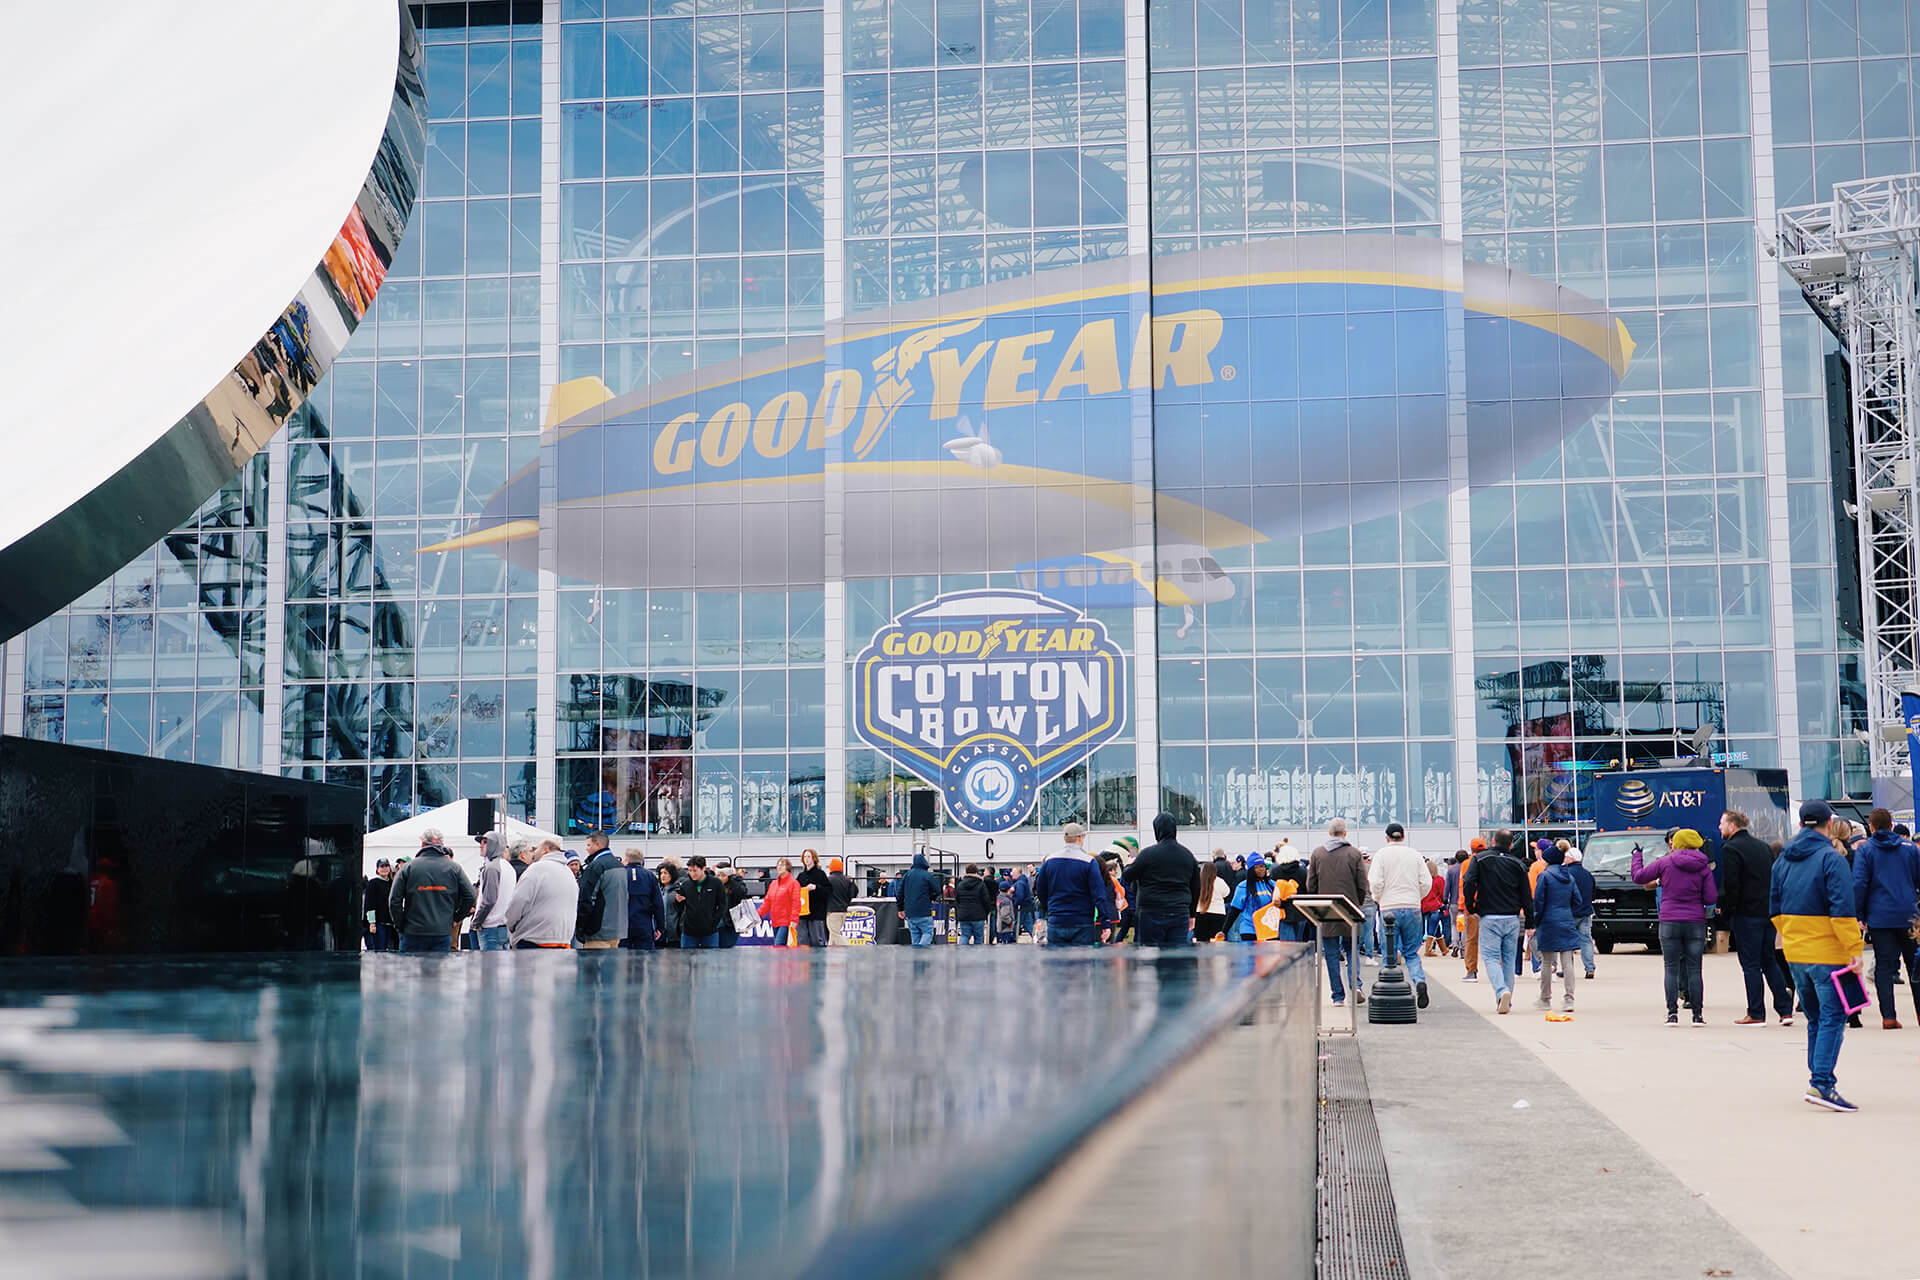 Goodyear branding in and around the stadium was a constant reminder of how both football teams and their fans have the opportunity to be blimpworthy.